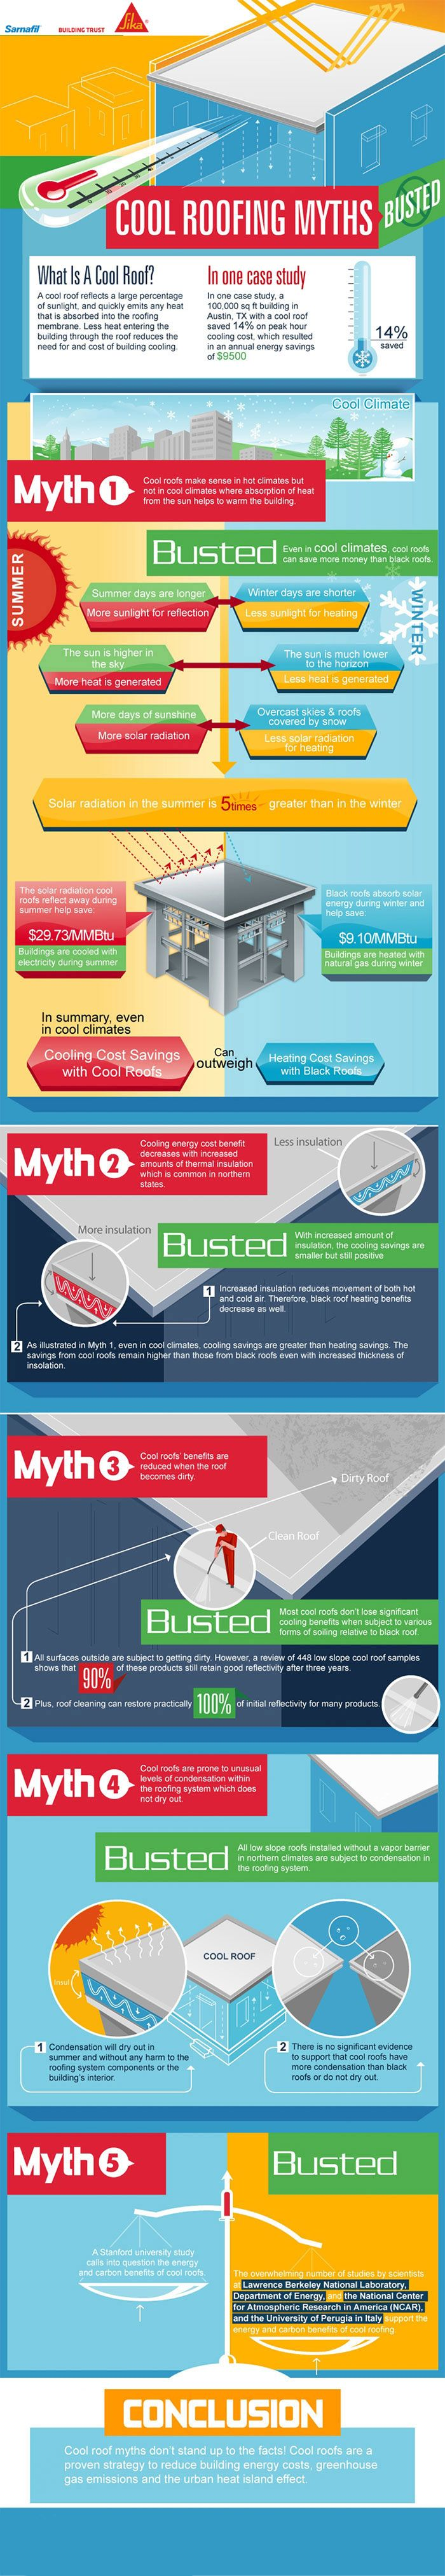 Cool Roofs Myths Busted. Despite an enviable performance history, there are some within the commercial roofing industry that have questioned the science behind cool ...